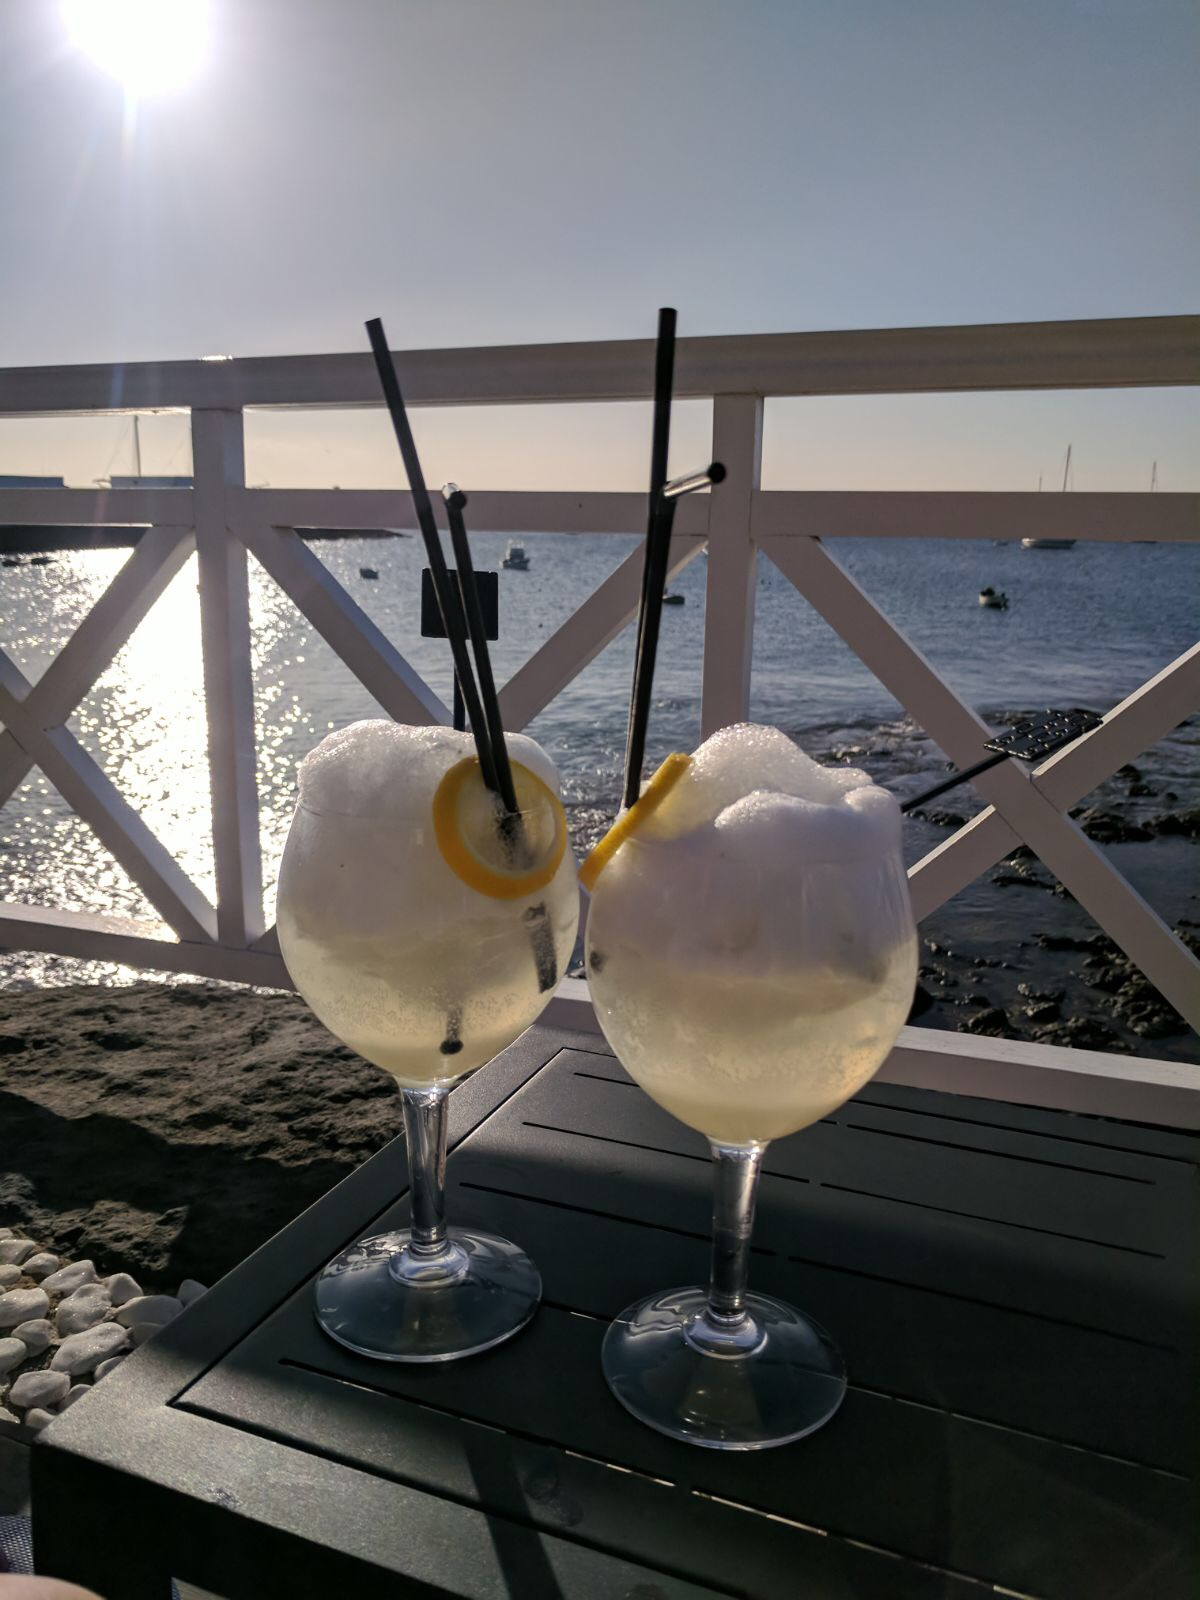 El Mirador, one of the best restaurants in Playa Blanca. Two glasses of gin fizz with views of the harbour in the background.